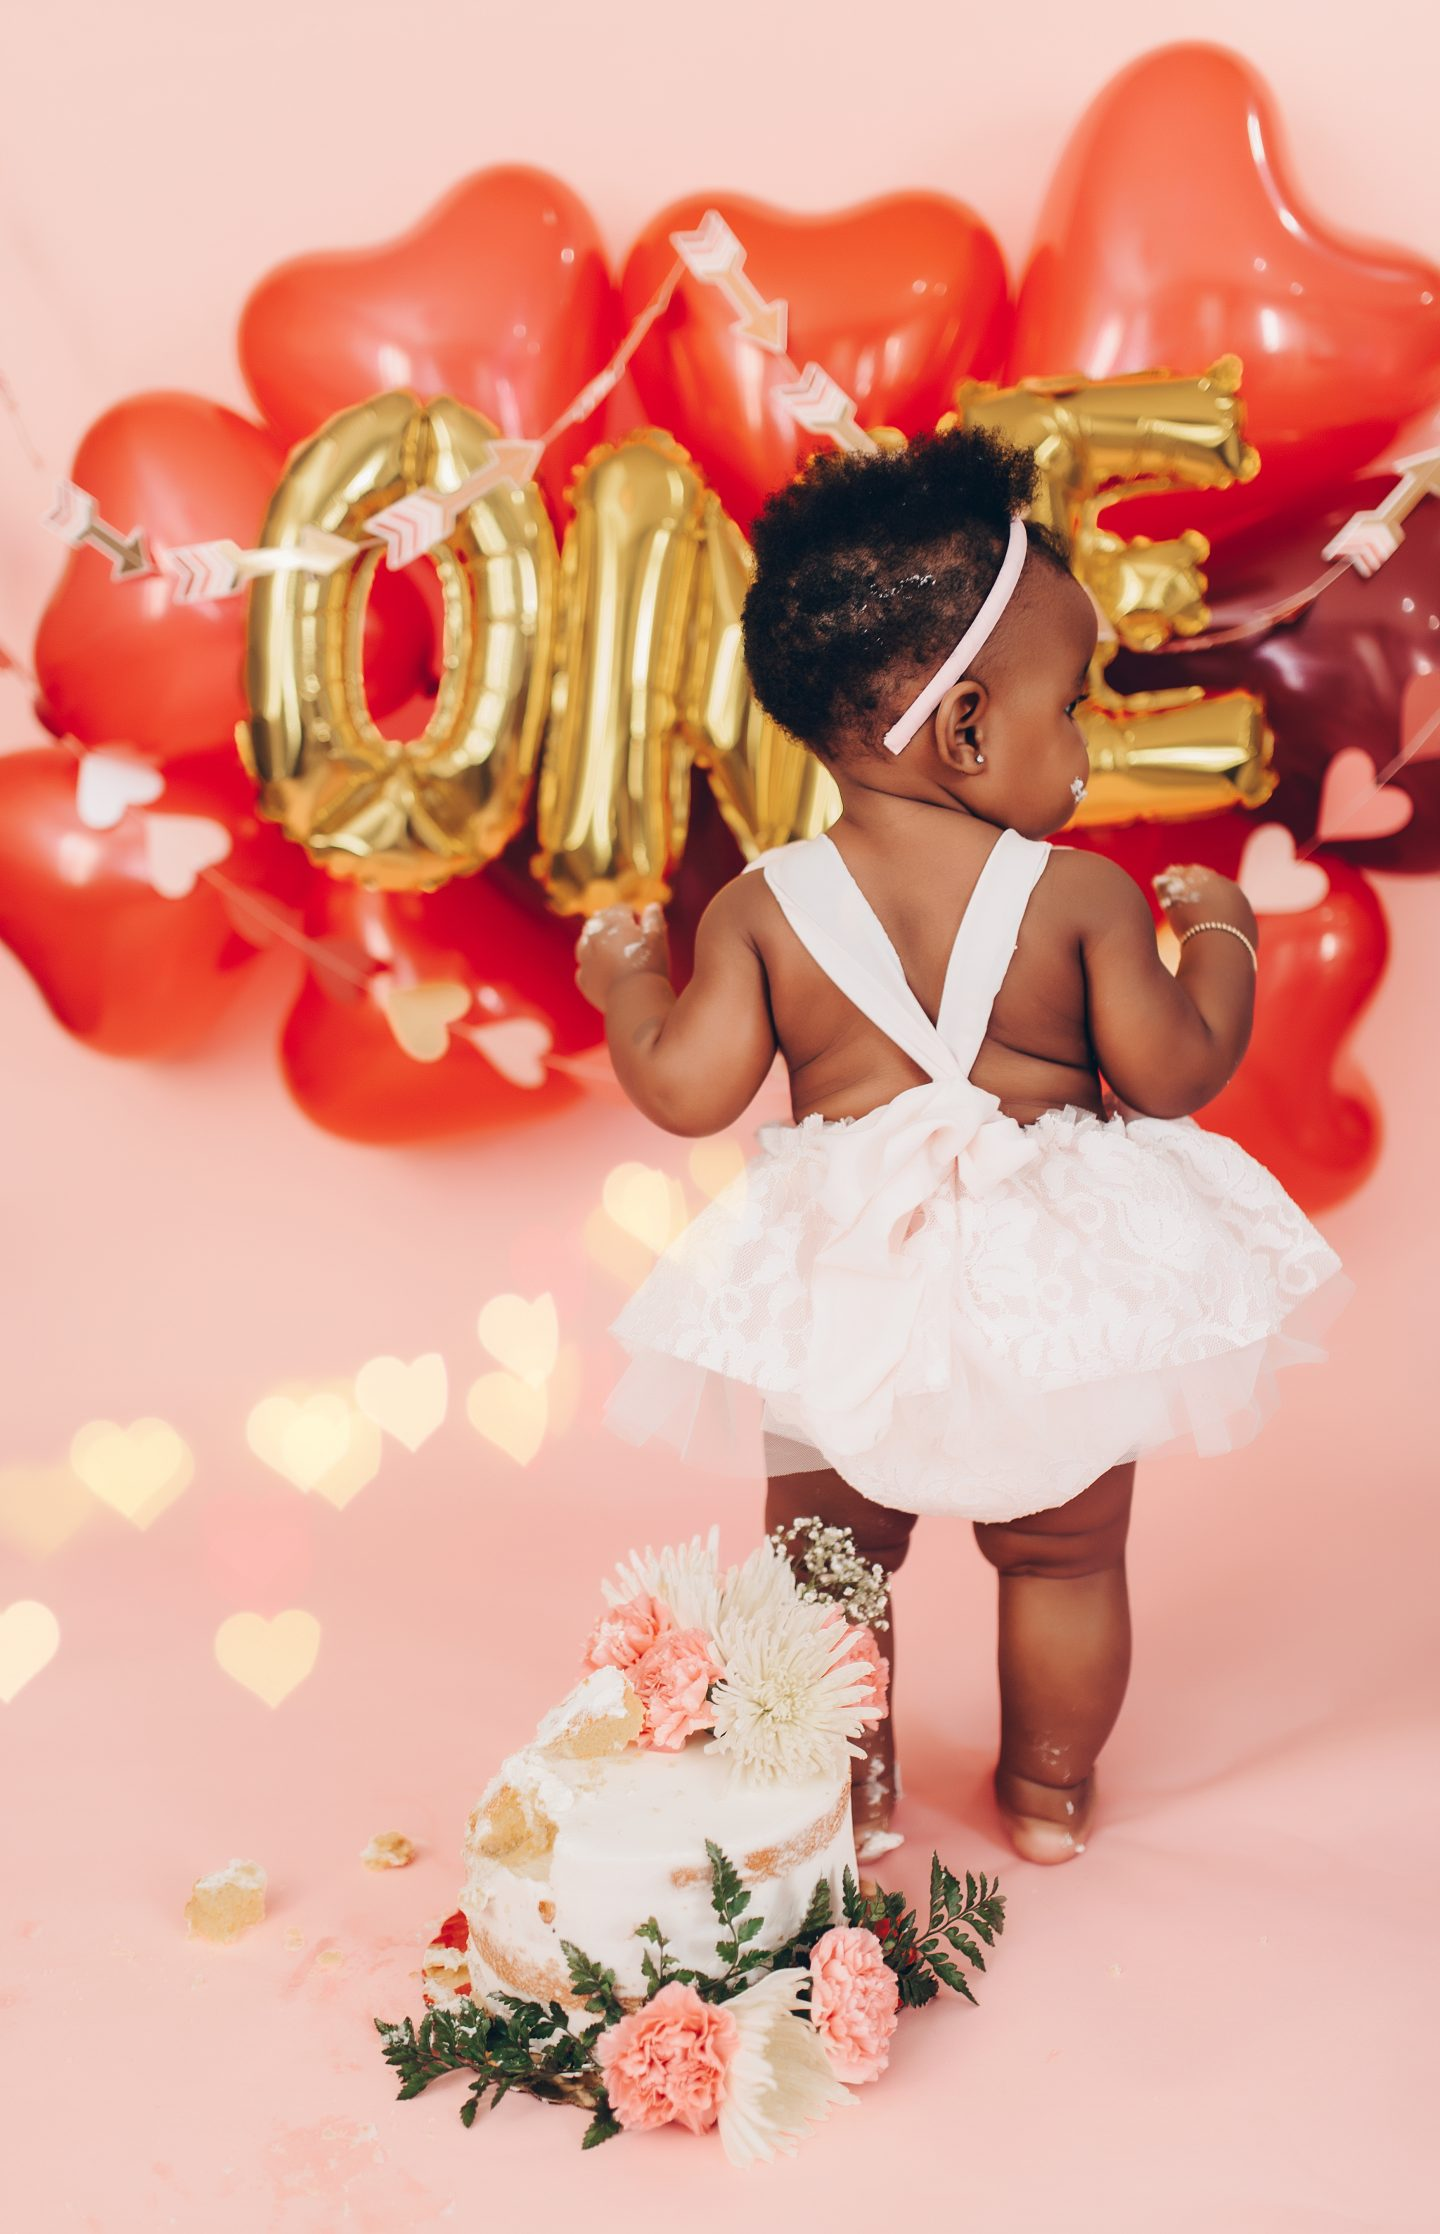 stella-adewunmi-of-jadore-fashion-shares-novas-first-birthday-cake-and-tutu